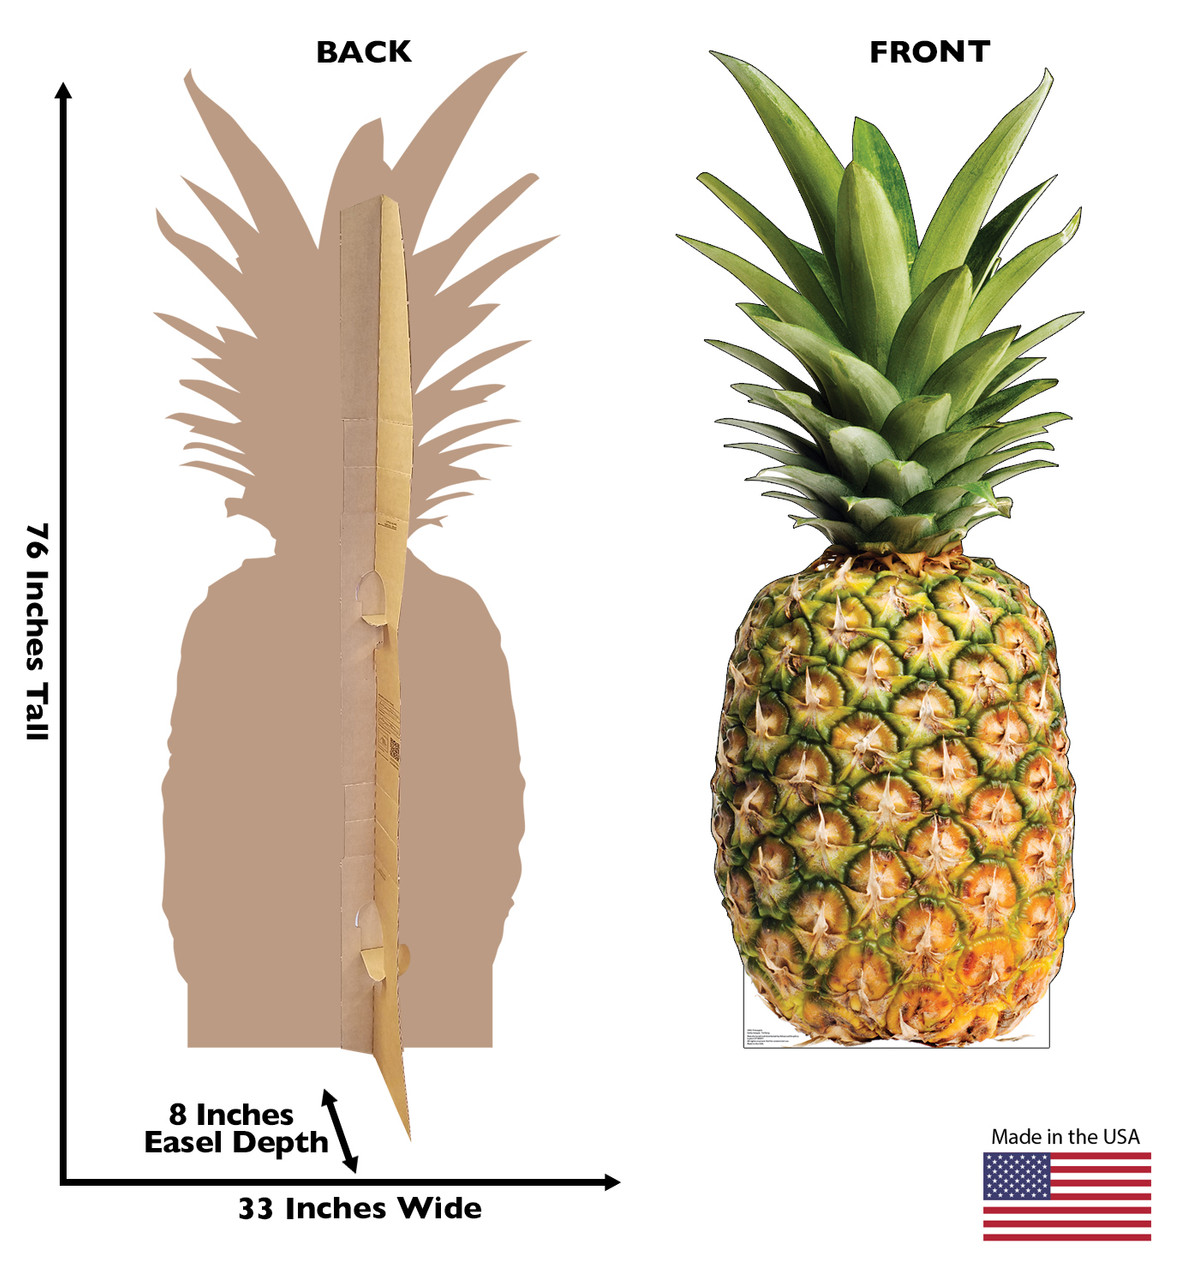 Life-size cardboard standee of a Pineapple Front and Back View